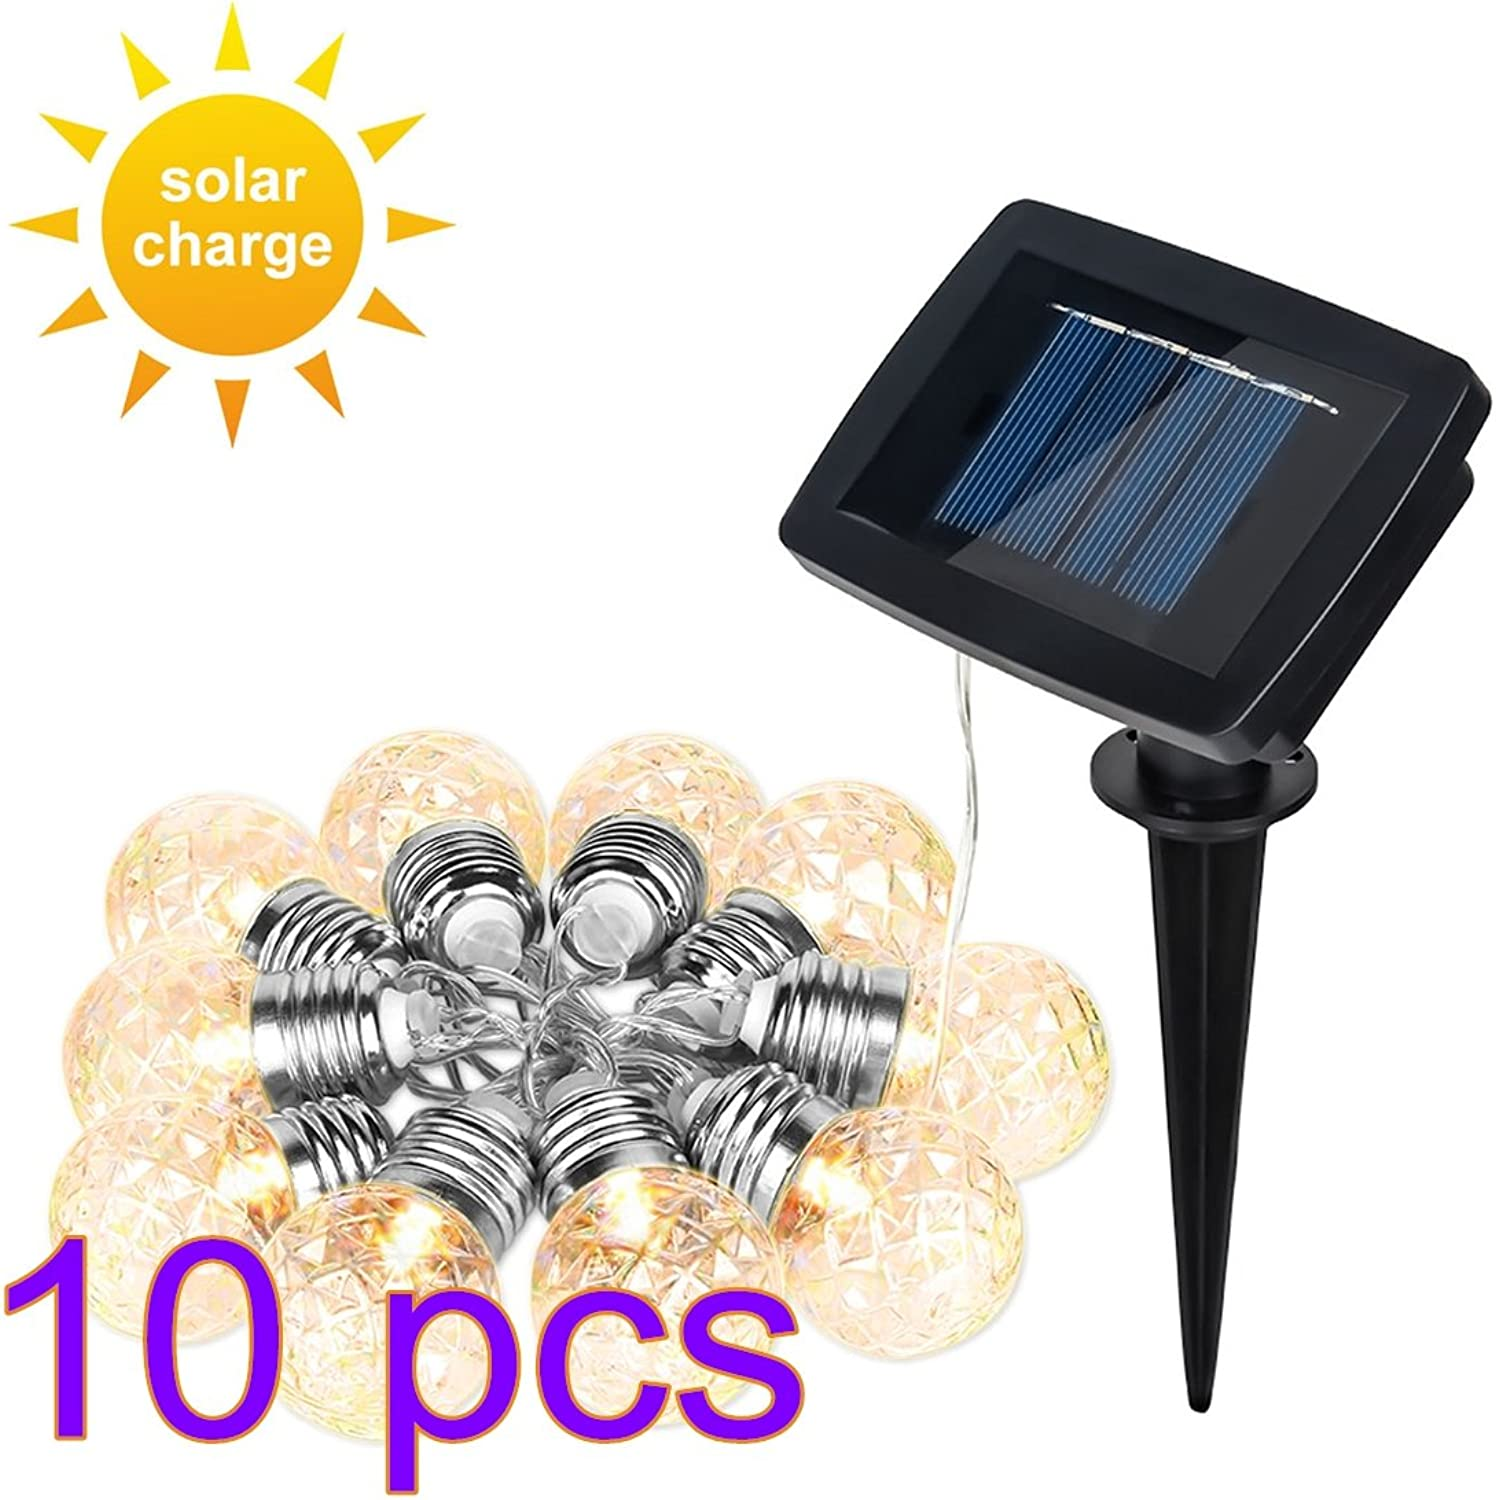 DDSKY 10-Pack Pineapple Solar Powered String Lights 3.8m 12.5ft 10 LED Solar String Light with 2 Modes, Waterproof LED Decorative Lights for Home Bathroom Party Garden Yard Christmas